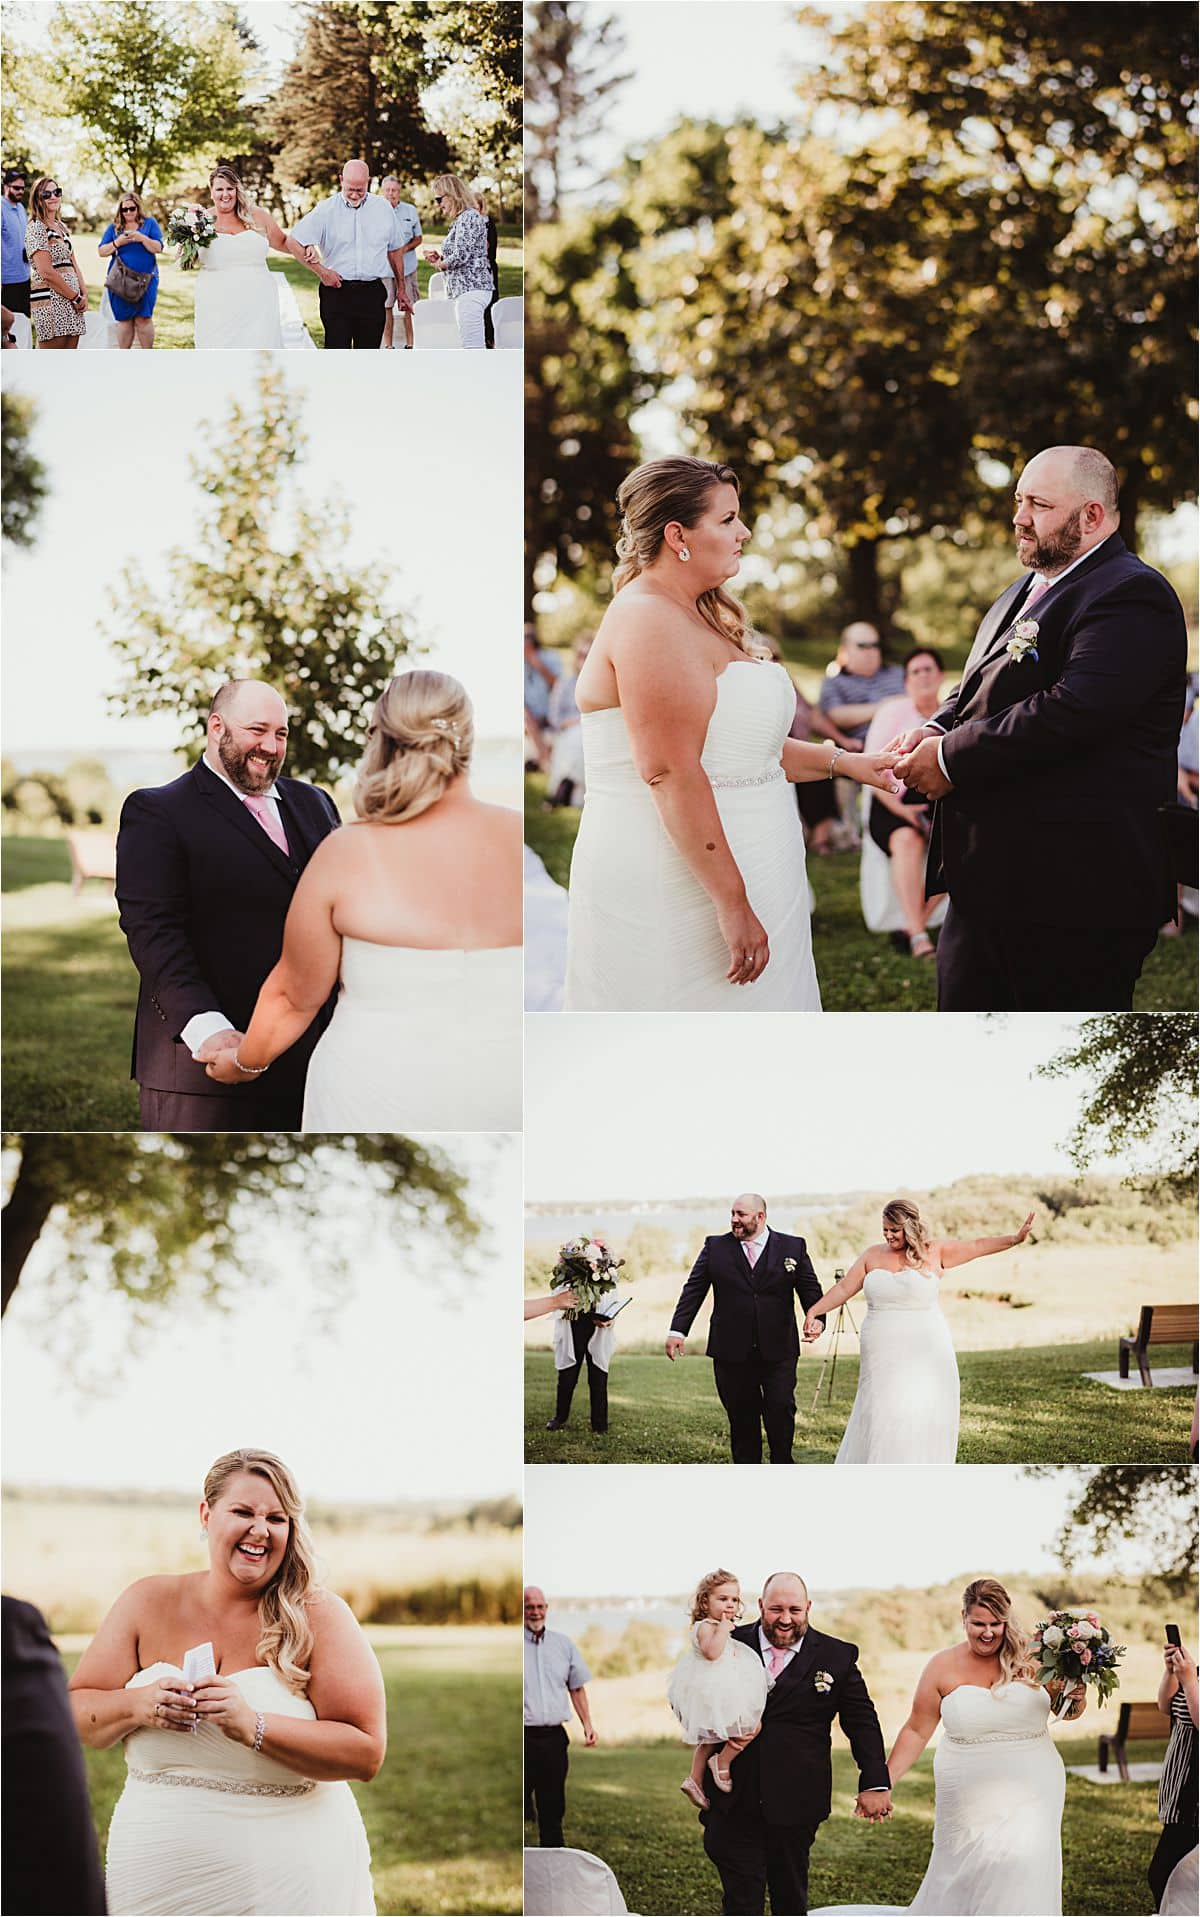 Outdoor Summer Microwedding Ceremony at Park